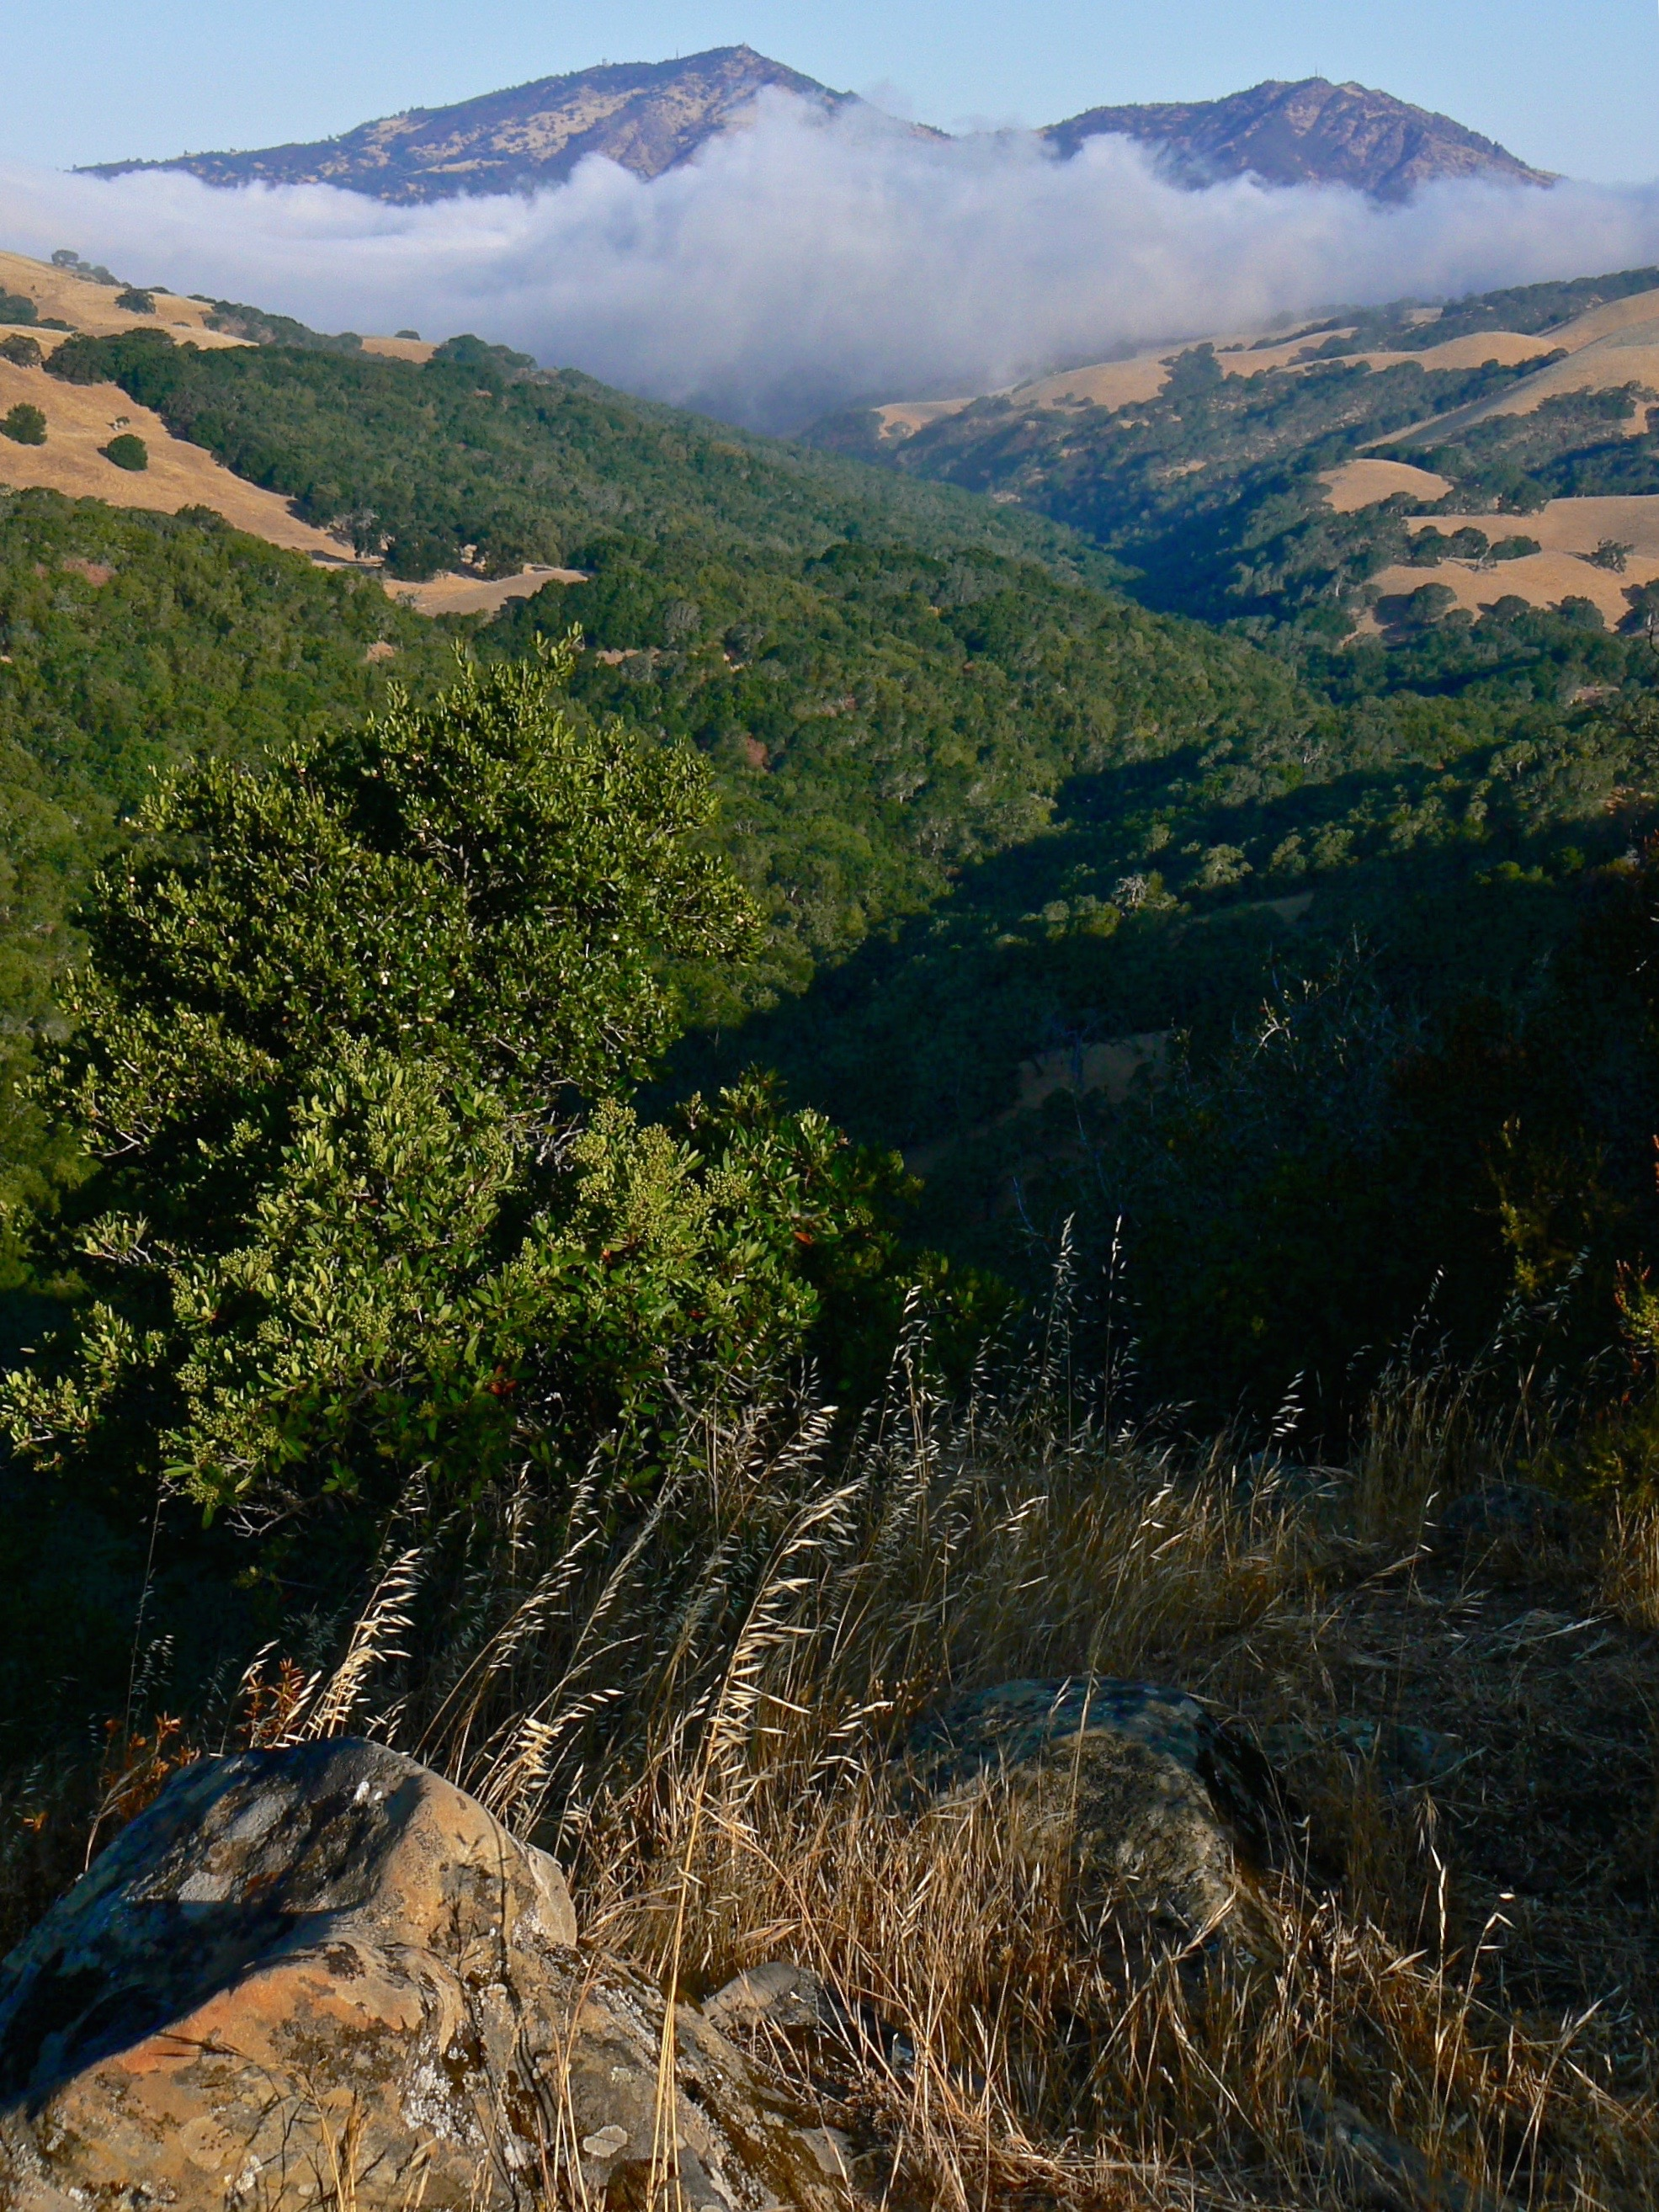 Morning on the Prairie Falcon ledge. The canyon below is cut by the headwaters of Marsh Creek.